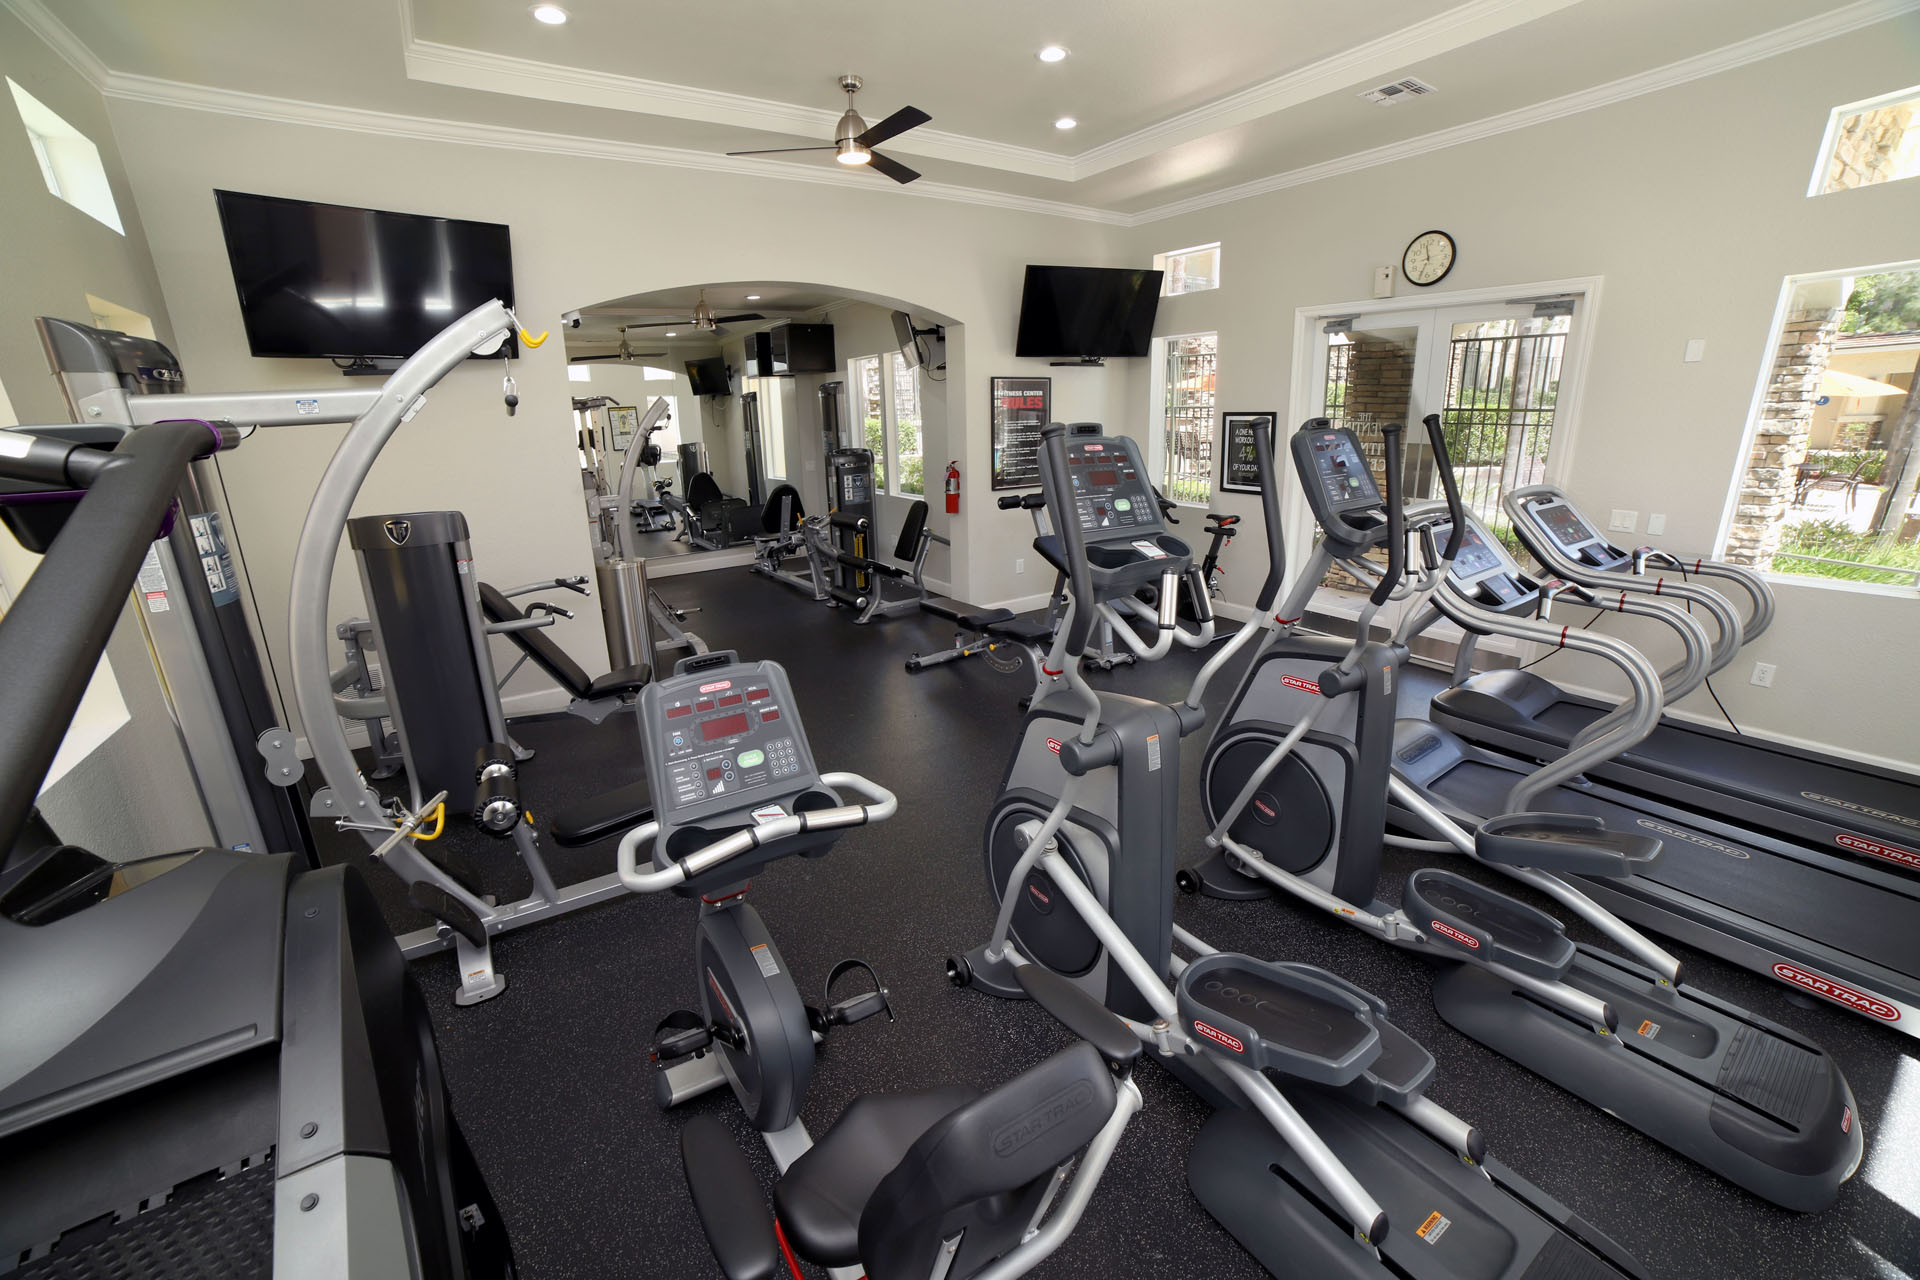 Aliso Viejo CA Apartments-Aventine Apartments Fitness Center with Cardio Machines, Weights, and TVs